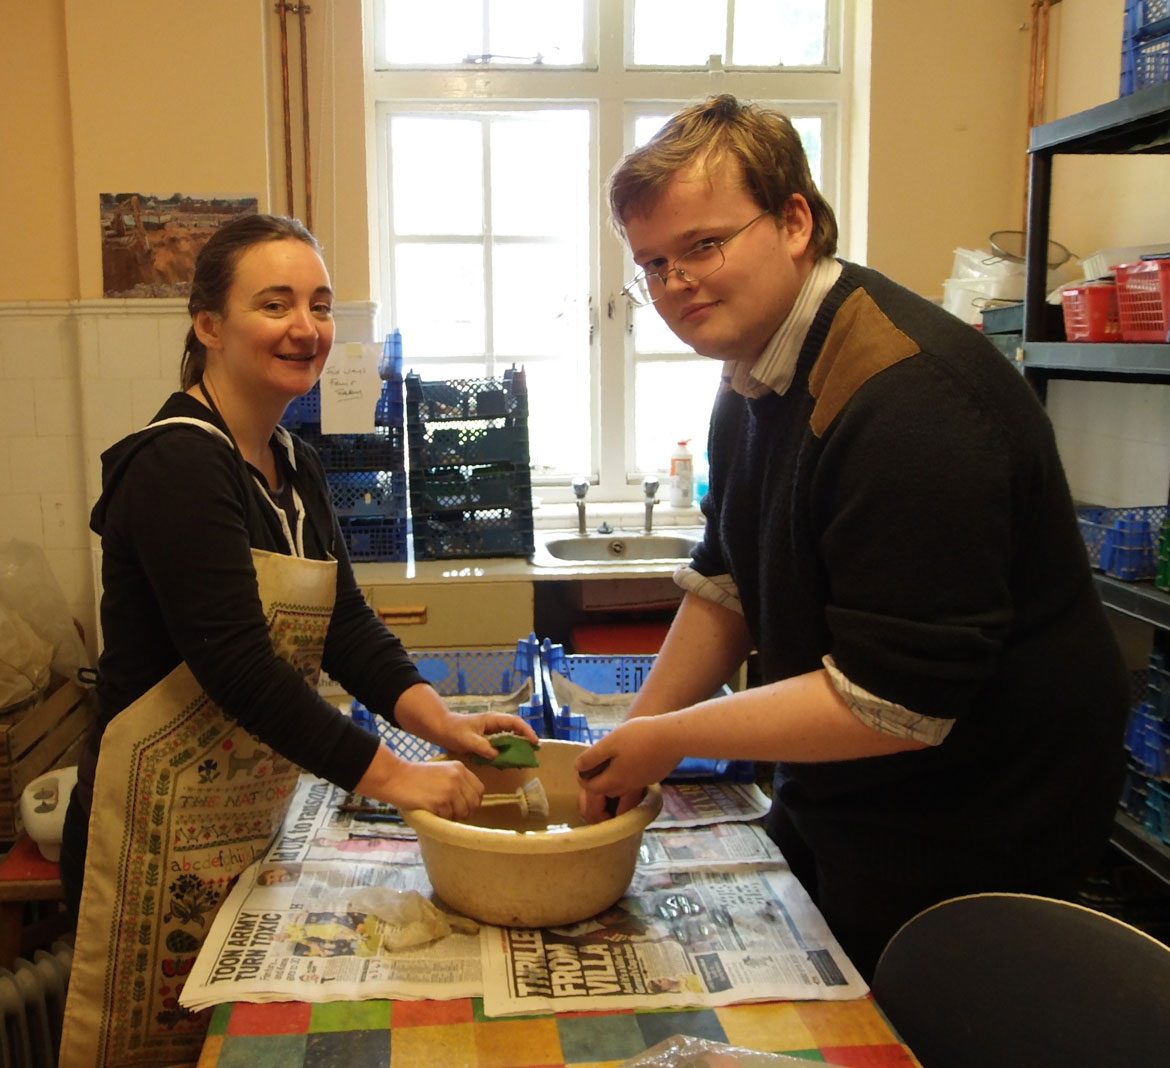 Volunteers clean the pottery from Thaxted. Image: CAT